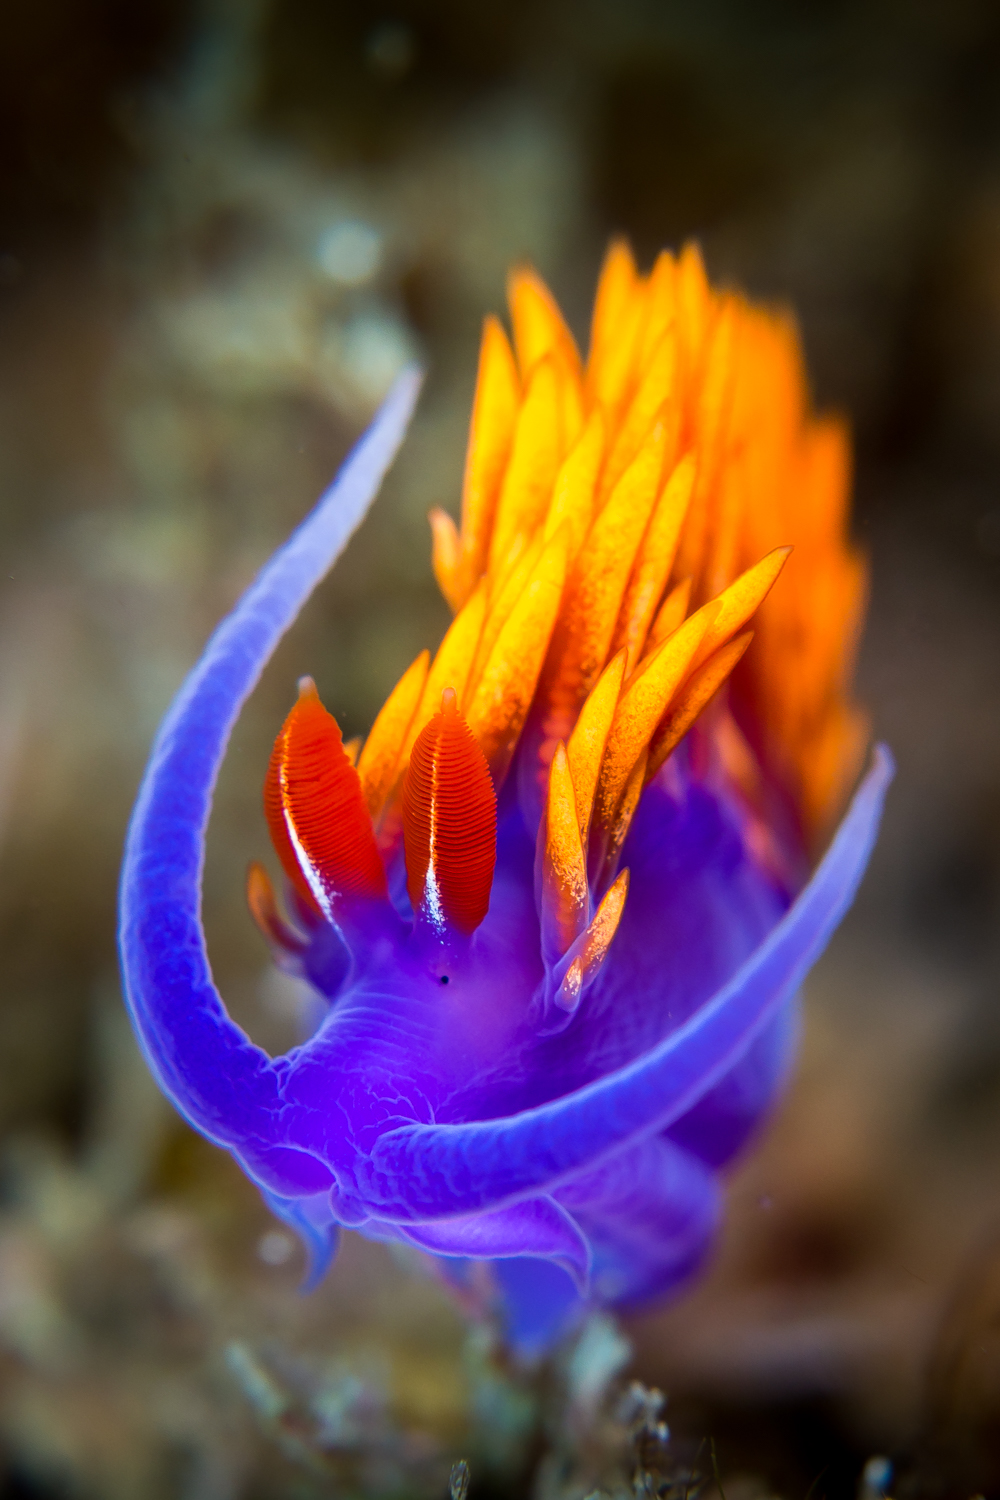 Spanish Shawl (Flabellina iodinea), photographed at Santa Cruz Island, CA